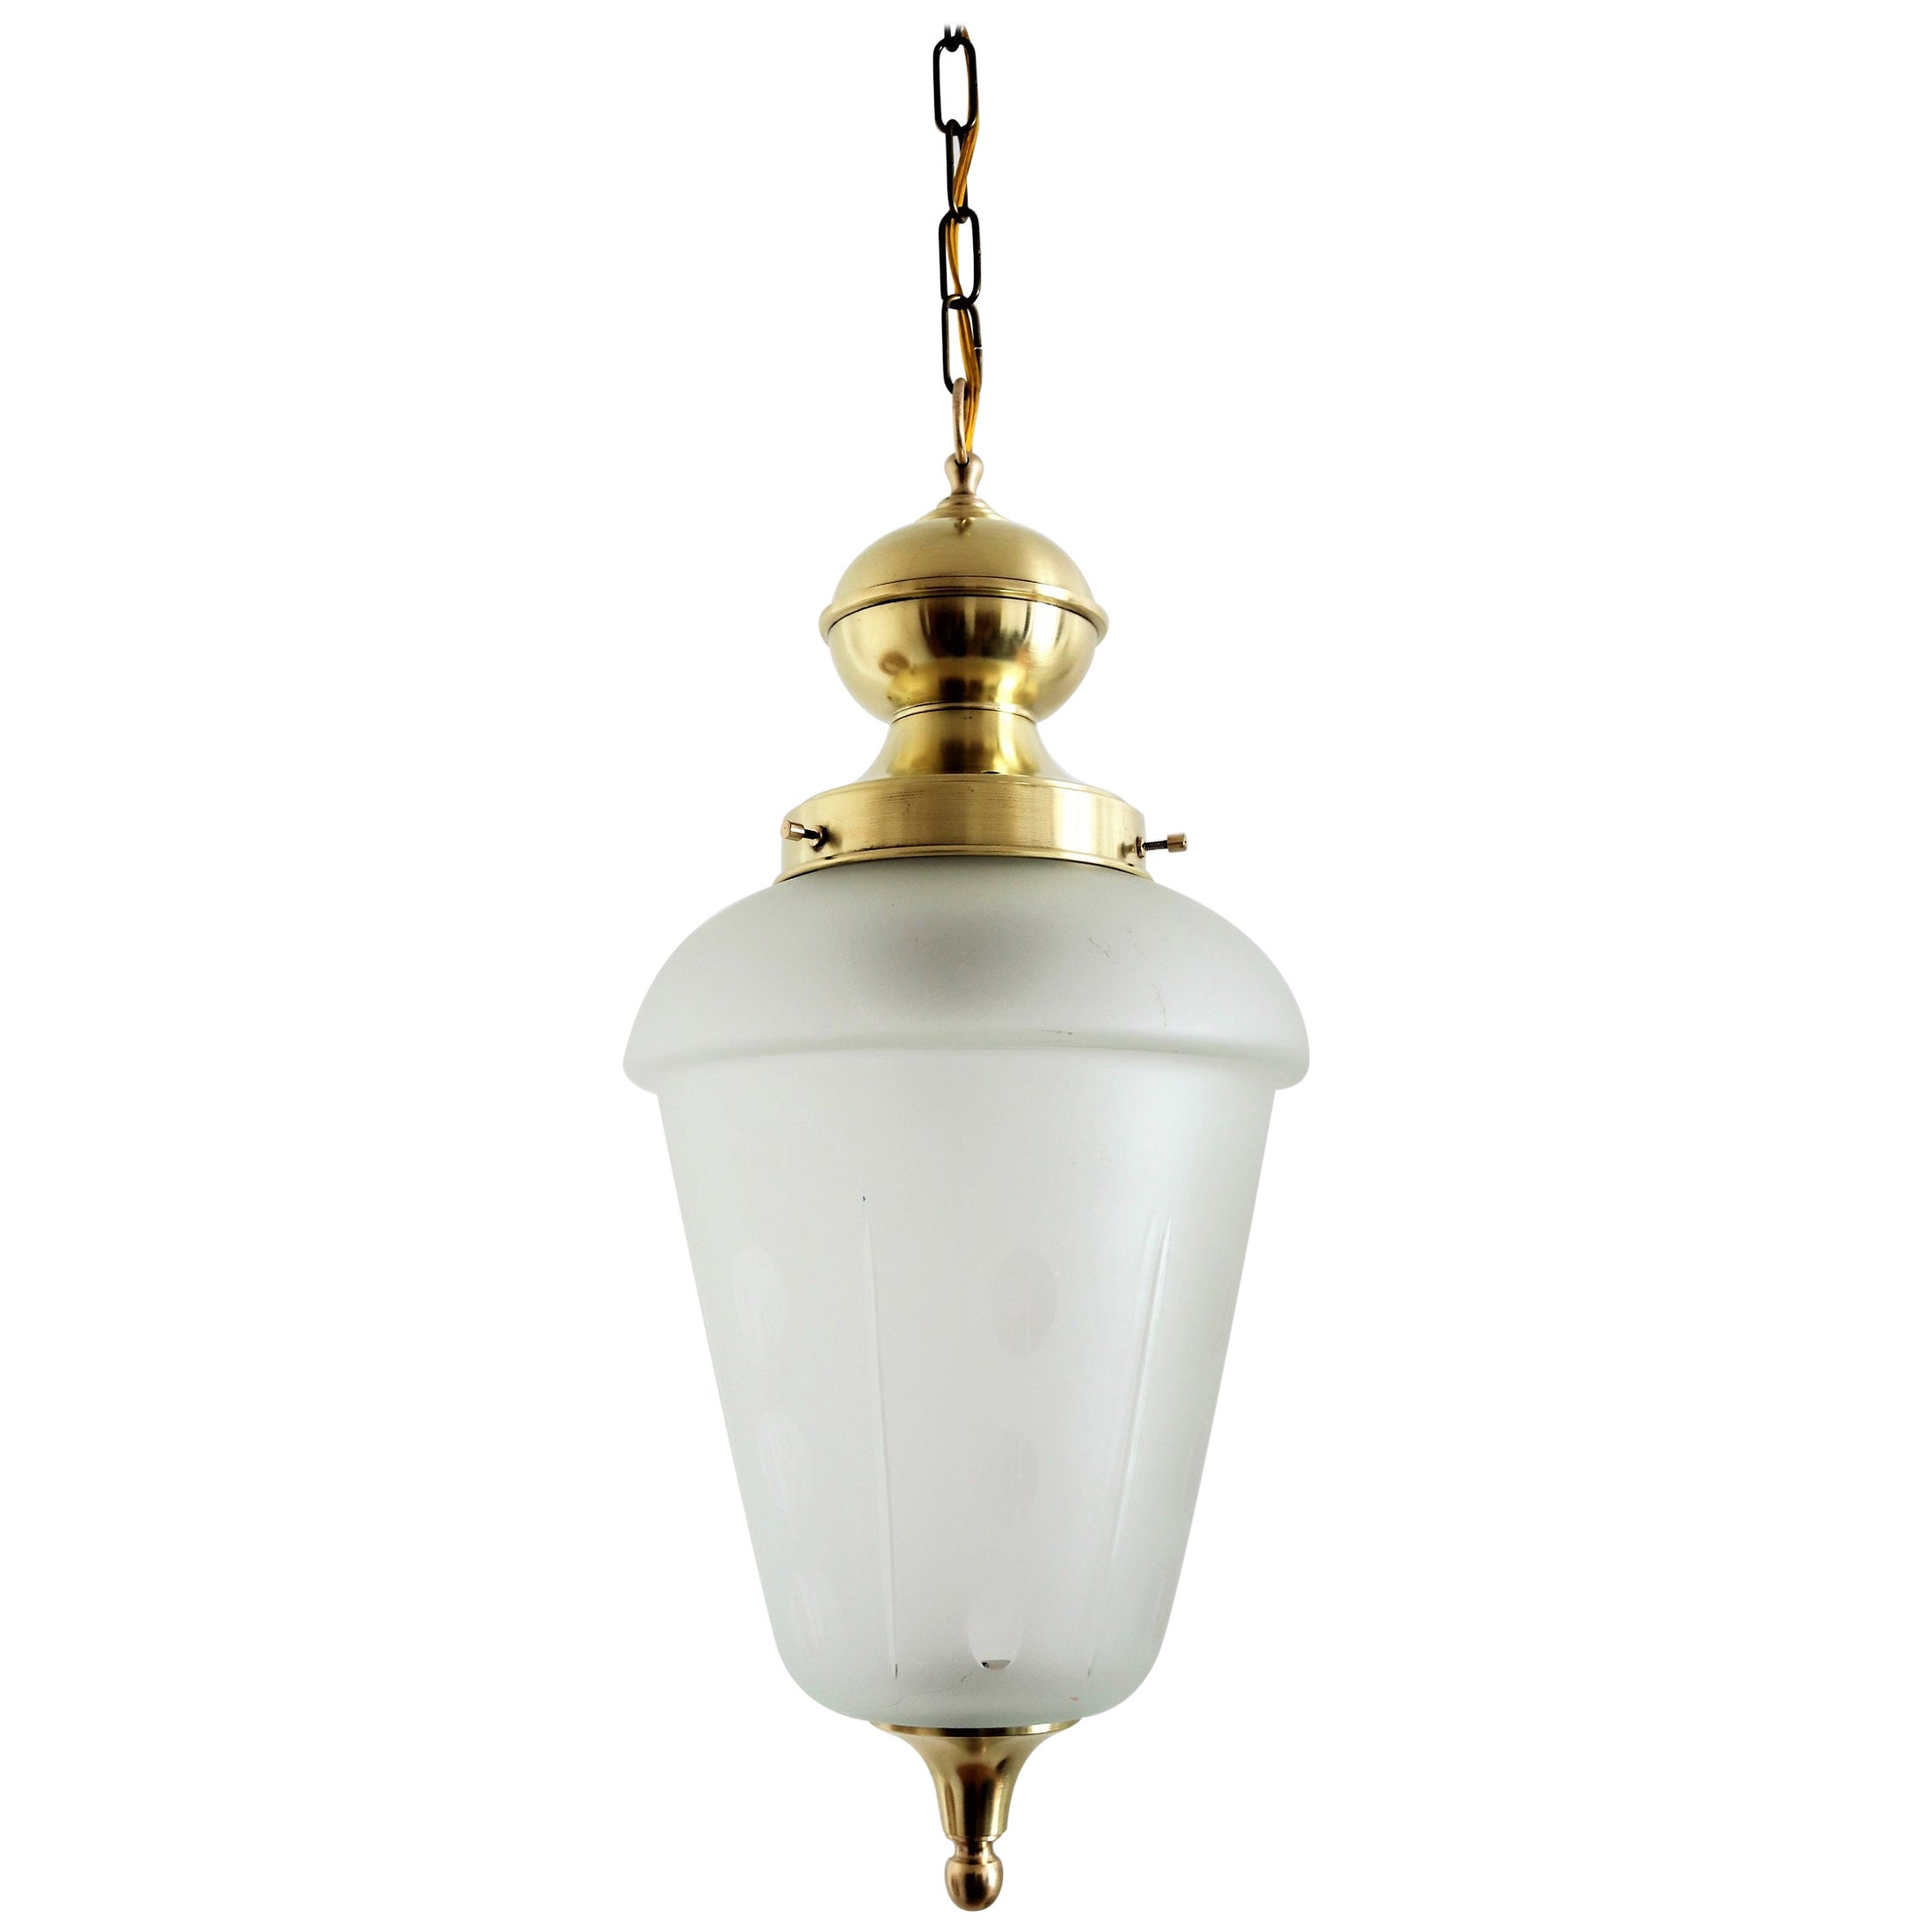 Italian Midcentury Brass and Cut Glass Pendant Lamp or Lantern, 1970s